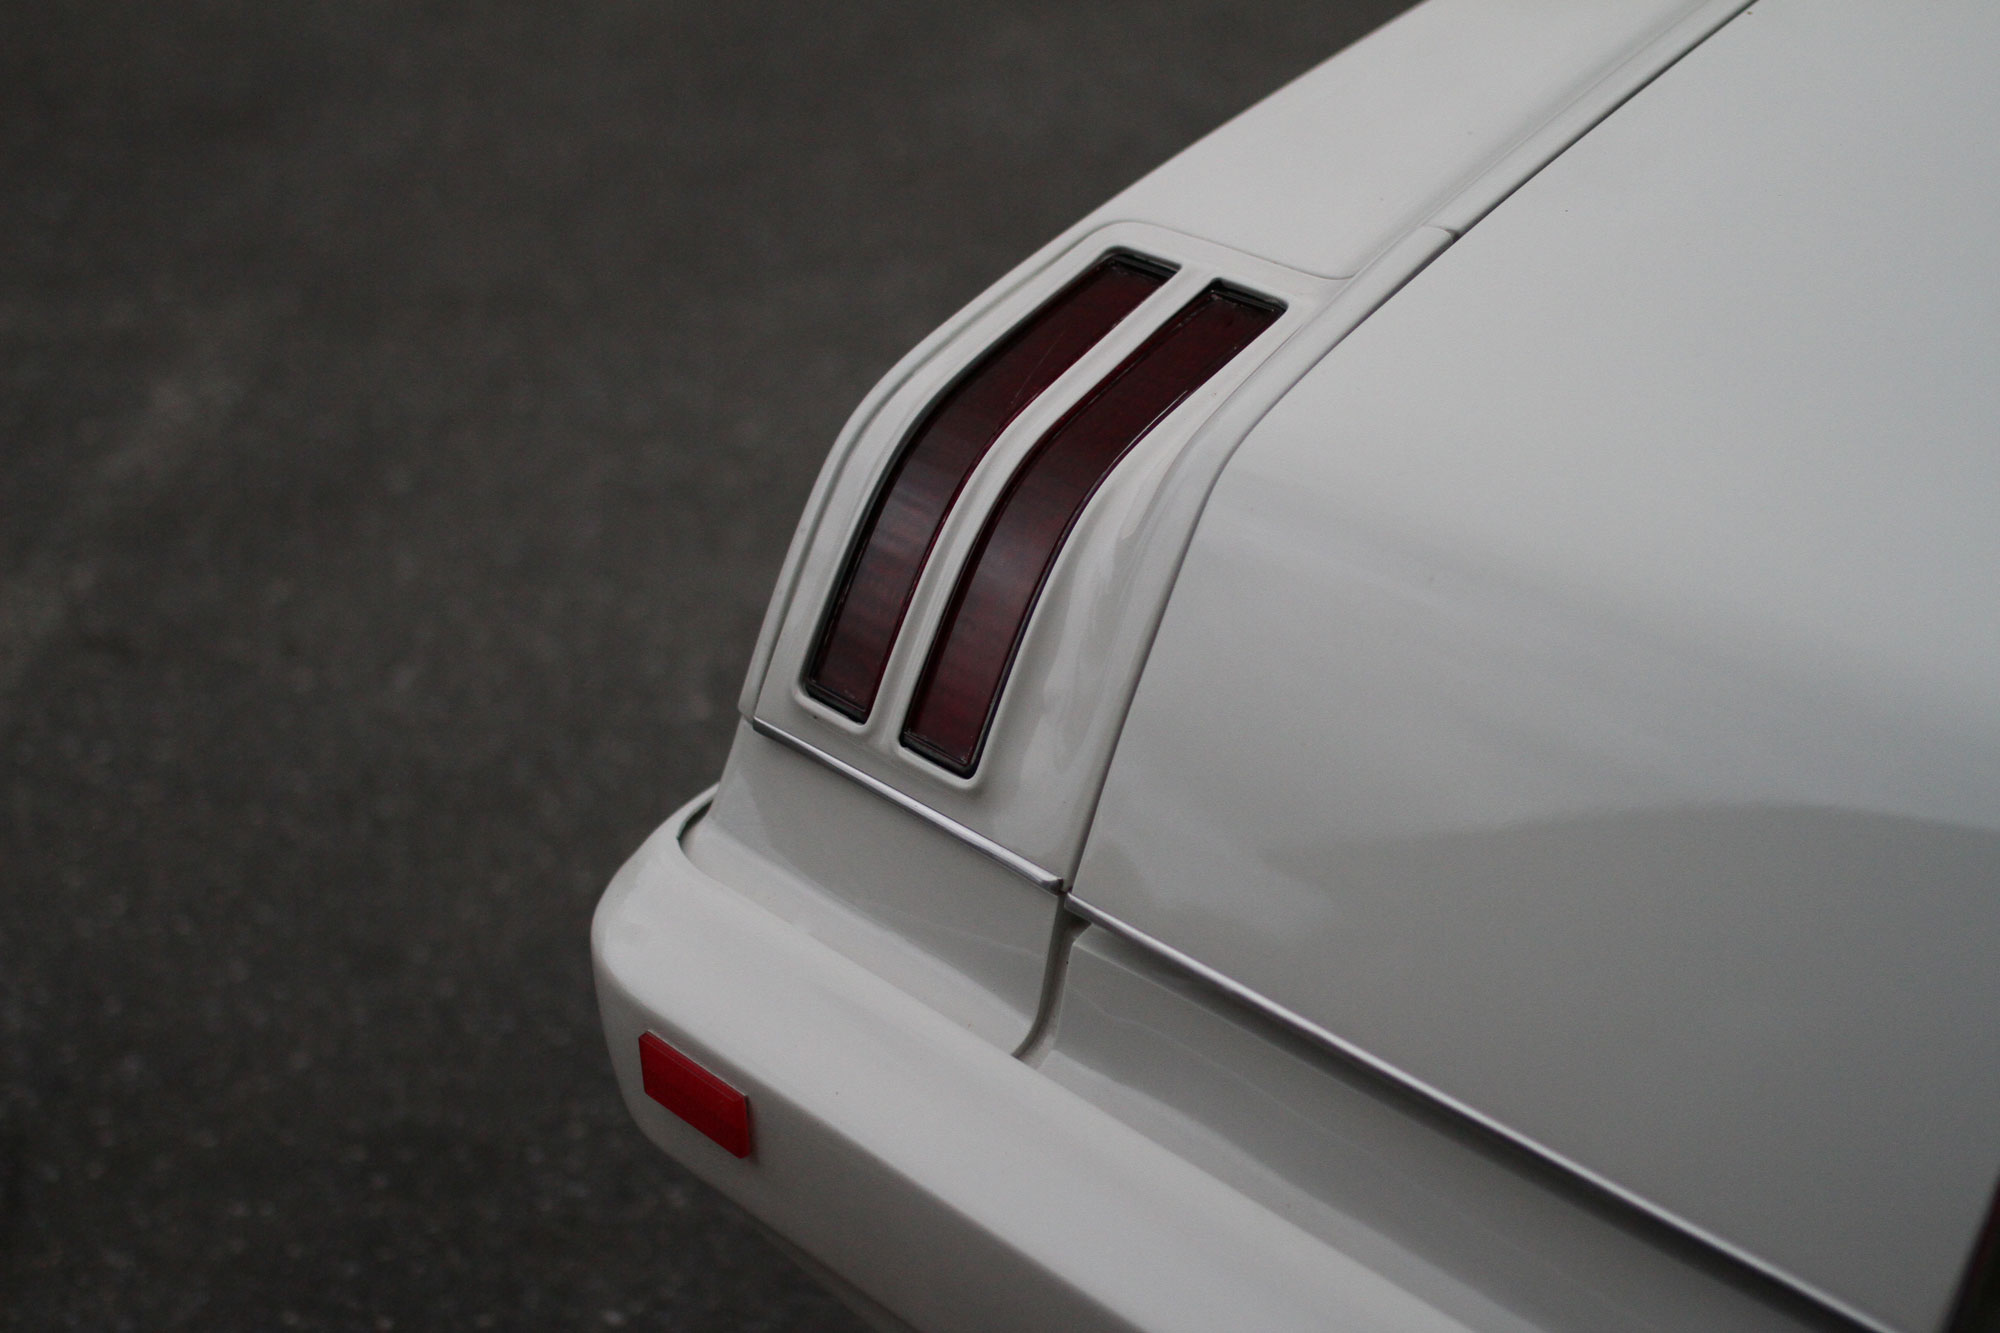 Taillight of the Grand Am